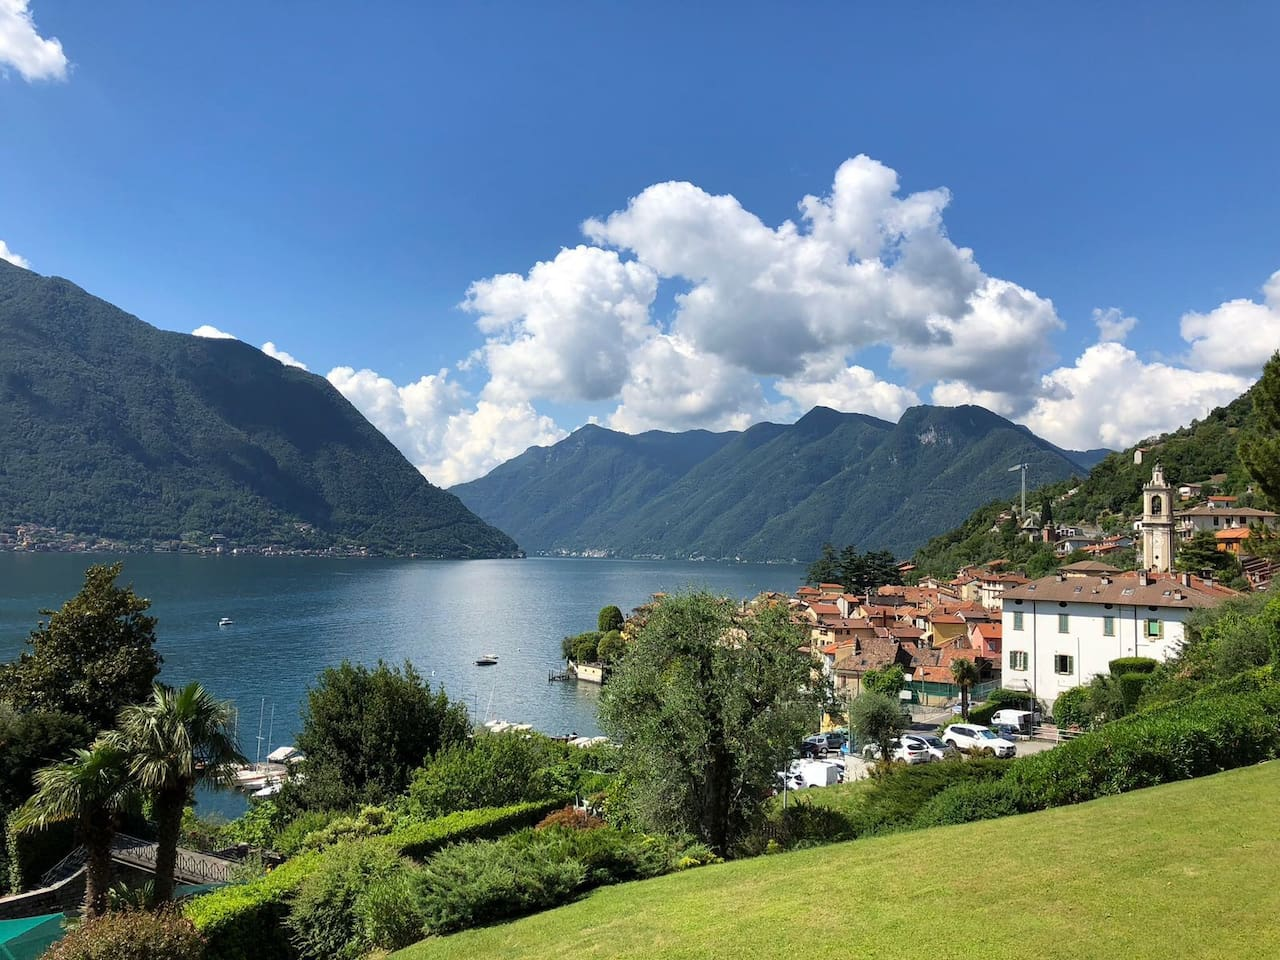 View south towards Como from the balcony